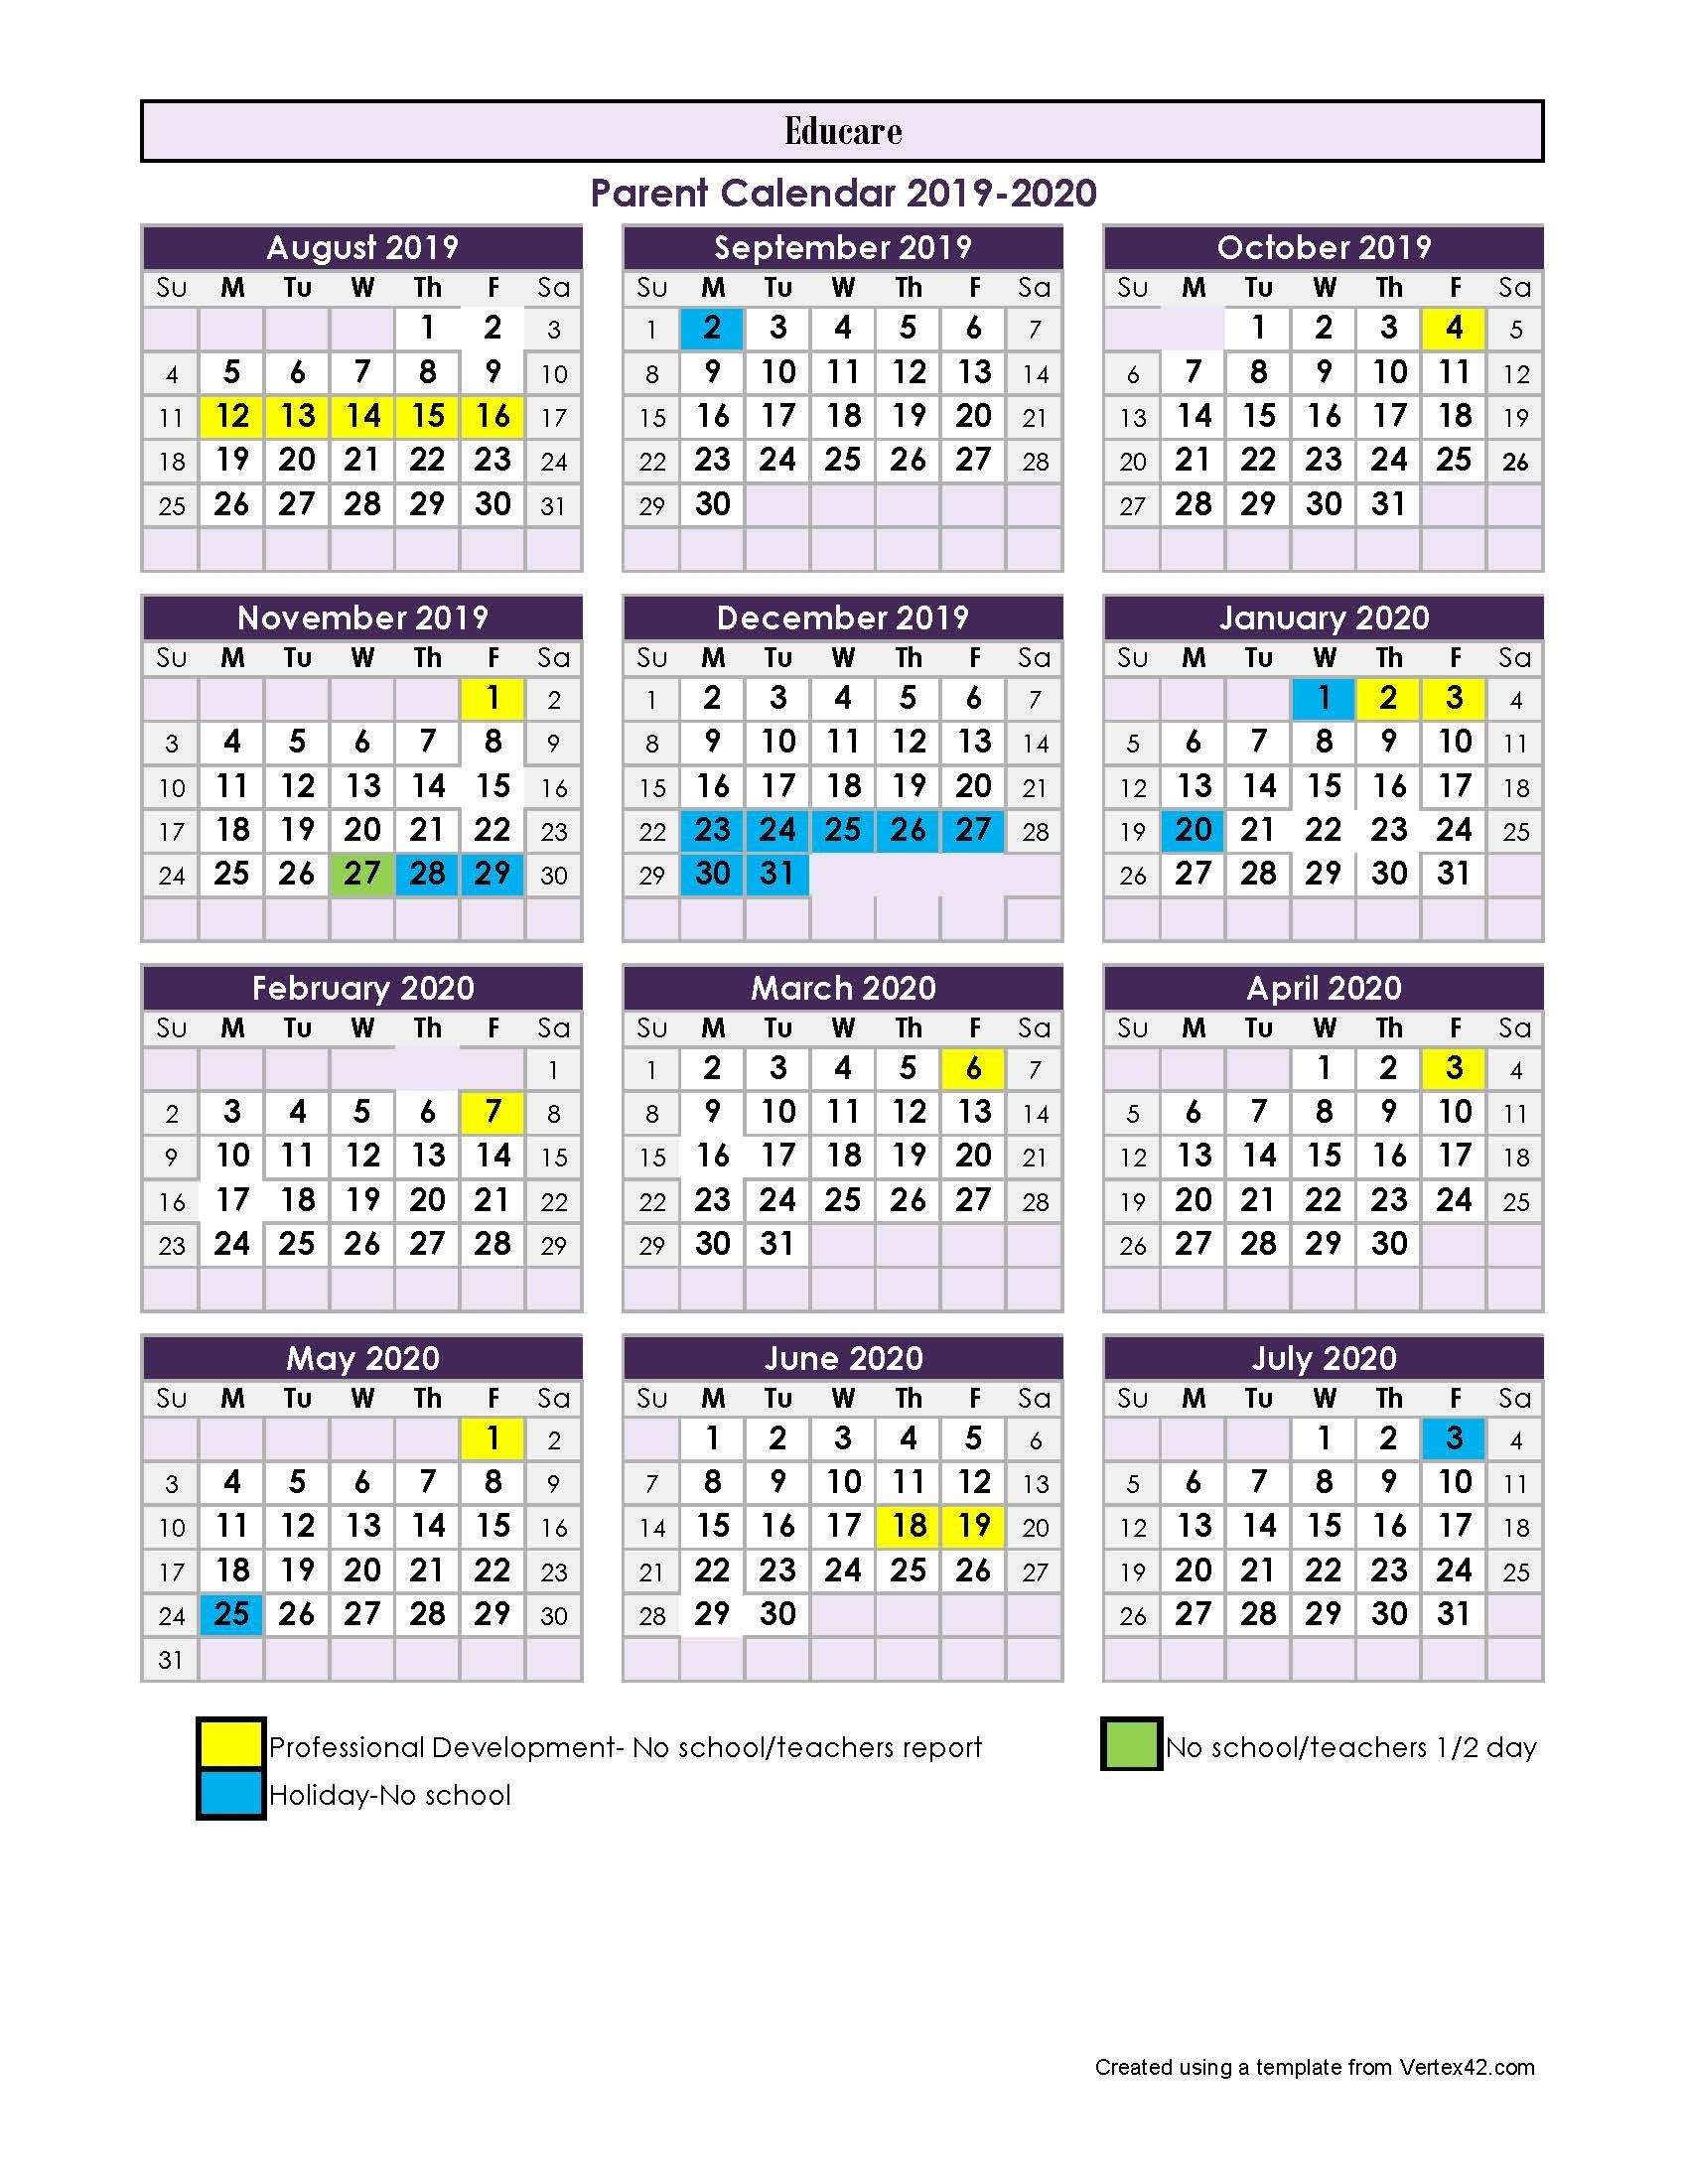 Parent Calendar - 2017-2018-January 2020 School Calendar